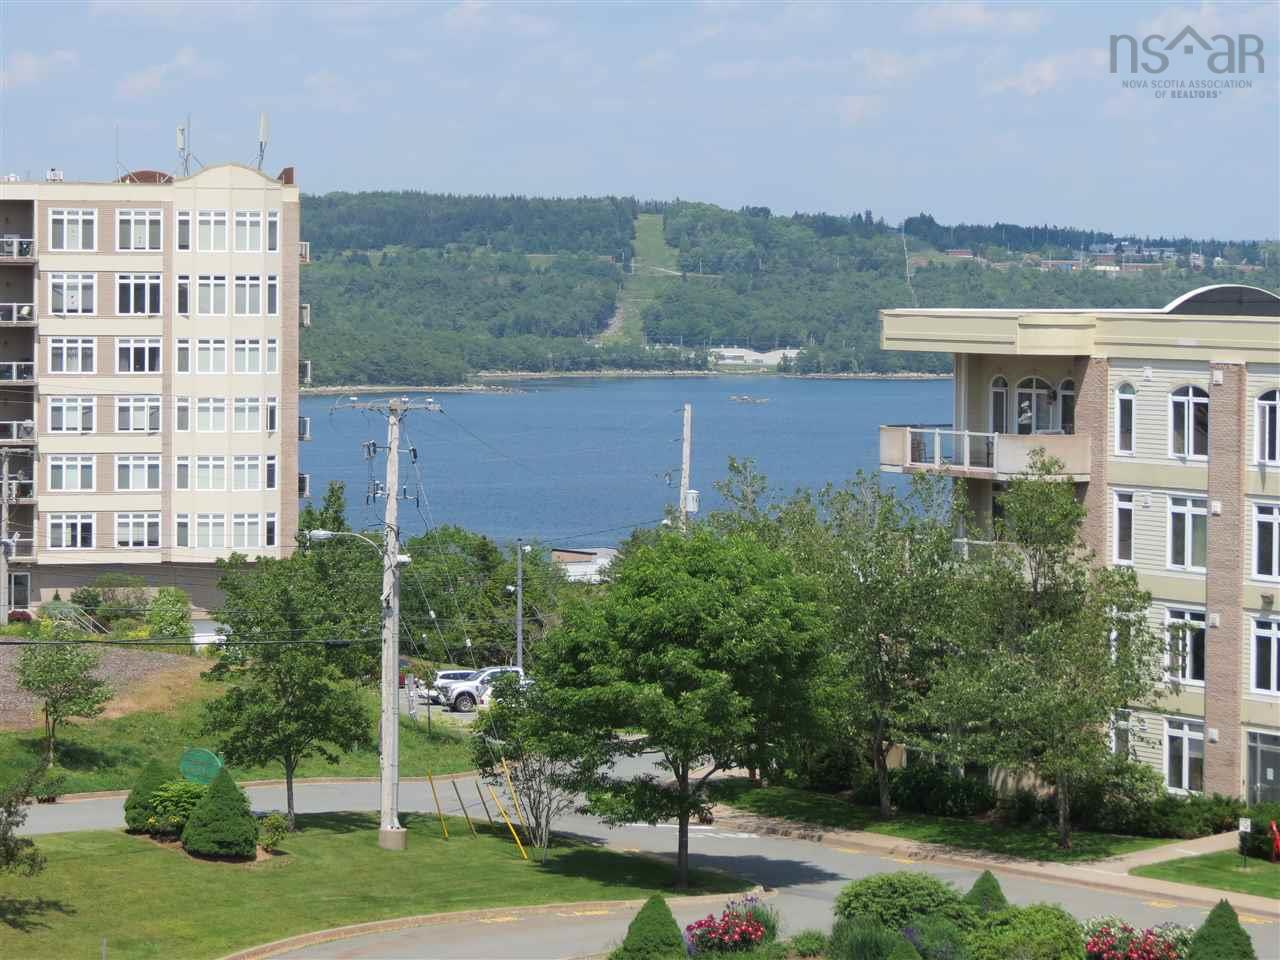 53 BEDROS LANE, UNIT 403, HALIFAX, NS Photo 1